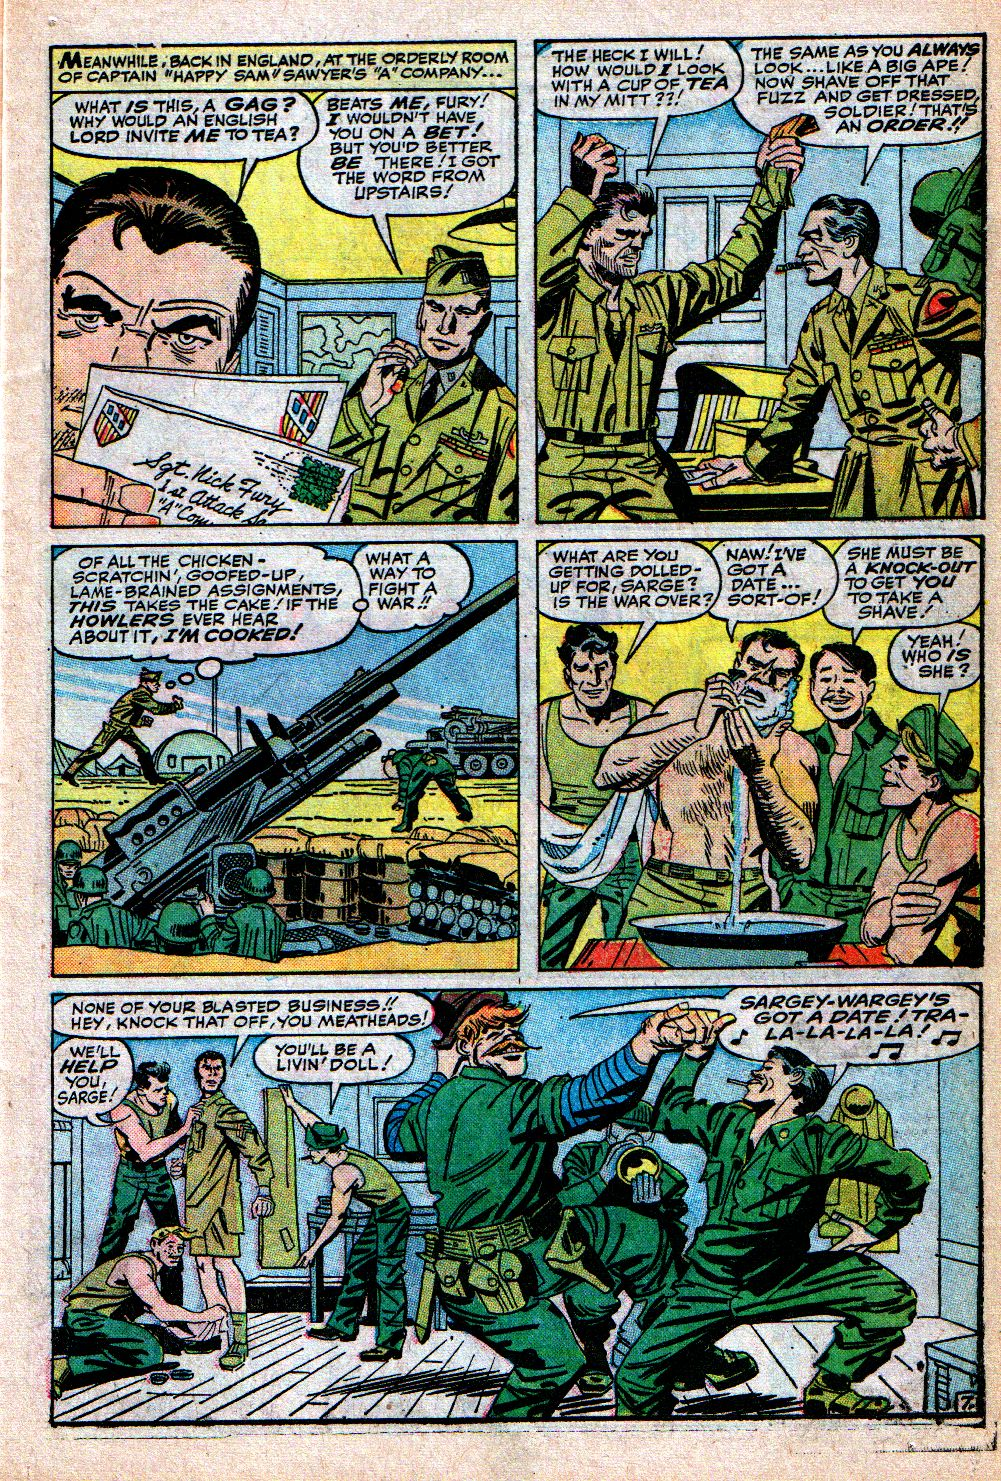 Read online Sgt. Fury comic -  Issue #4 - 11